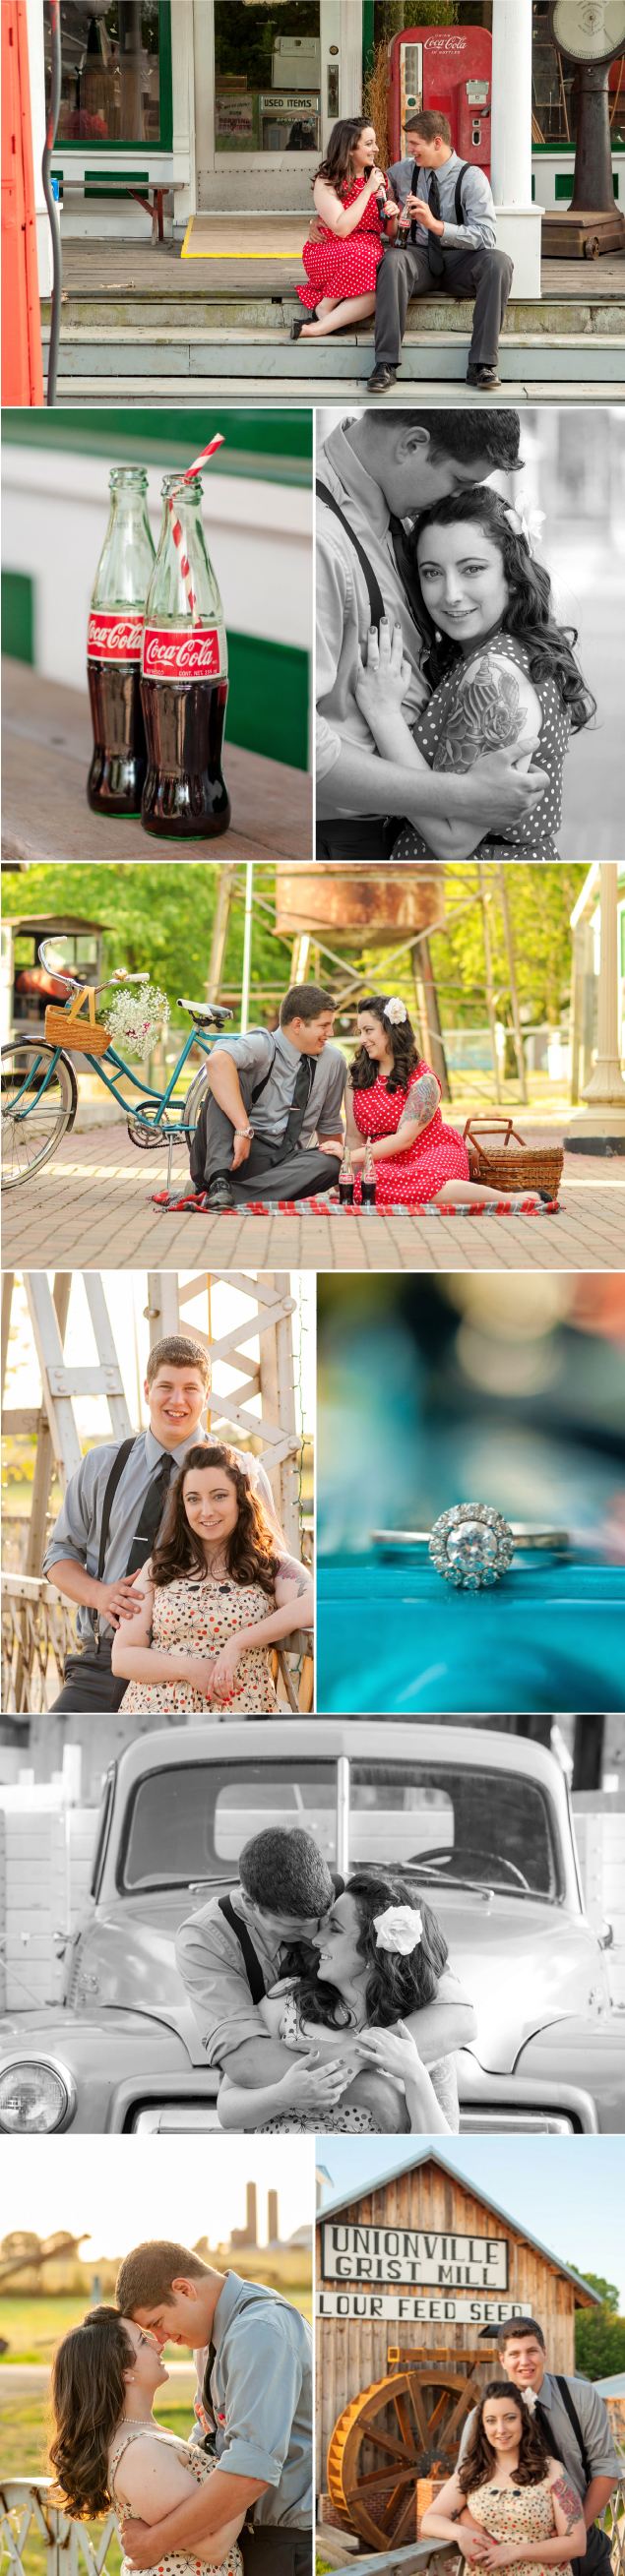 Symco_Wisconsin_Engagement_Rockabilly_Vintage